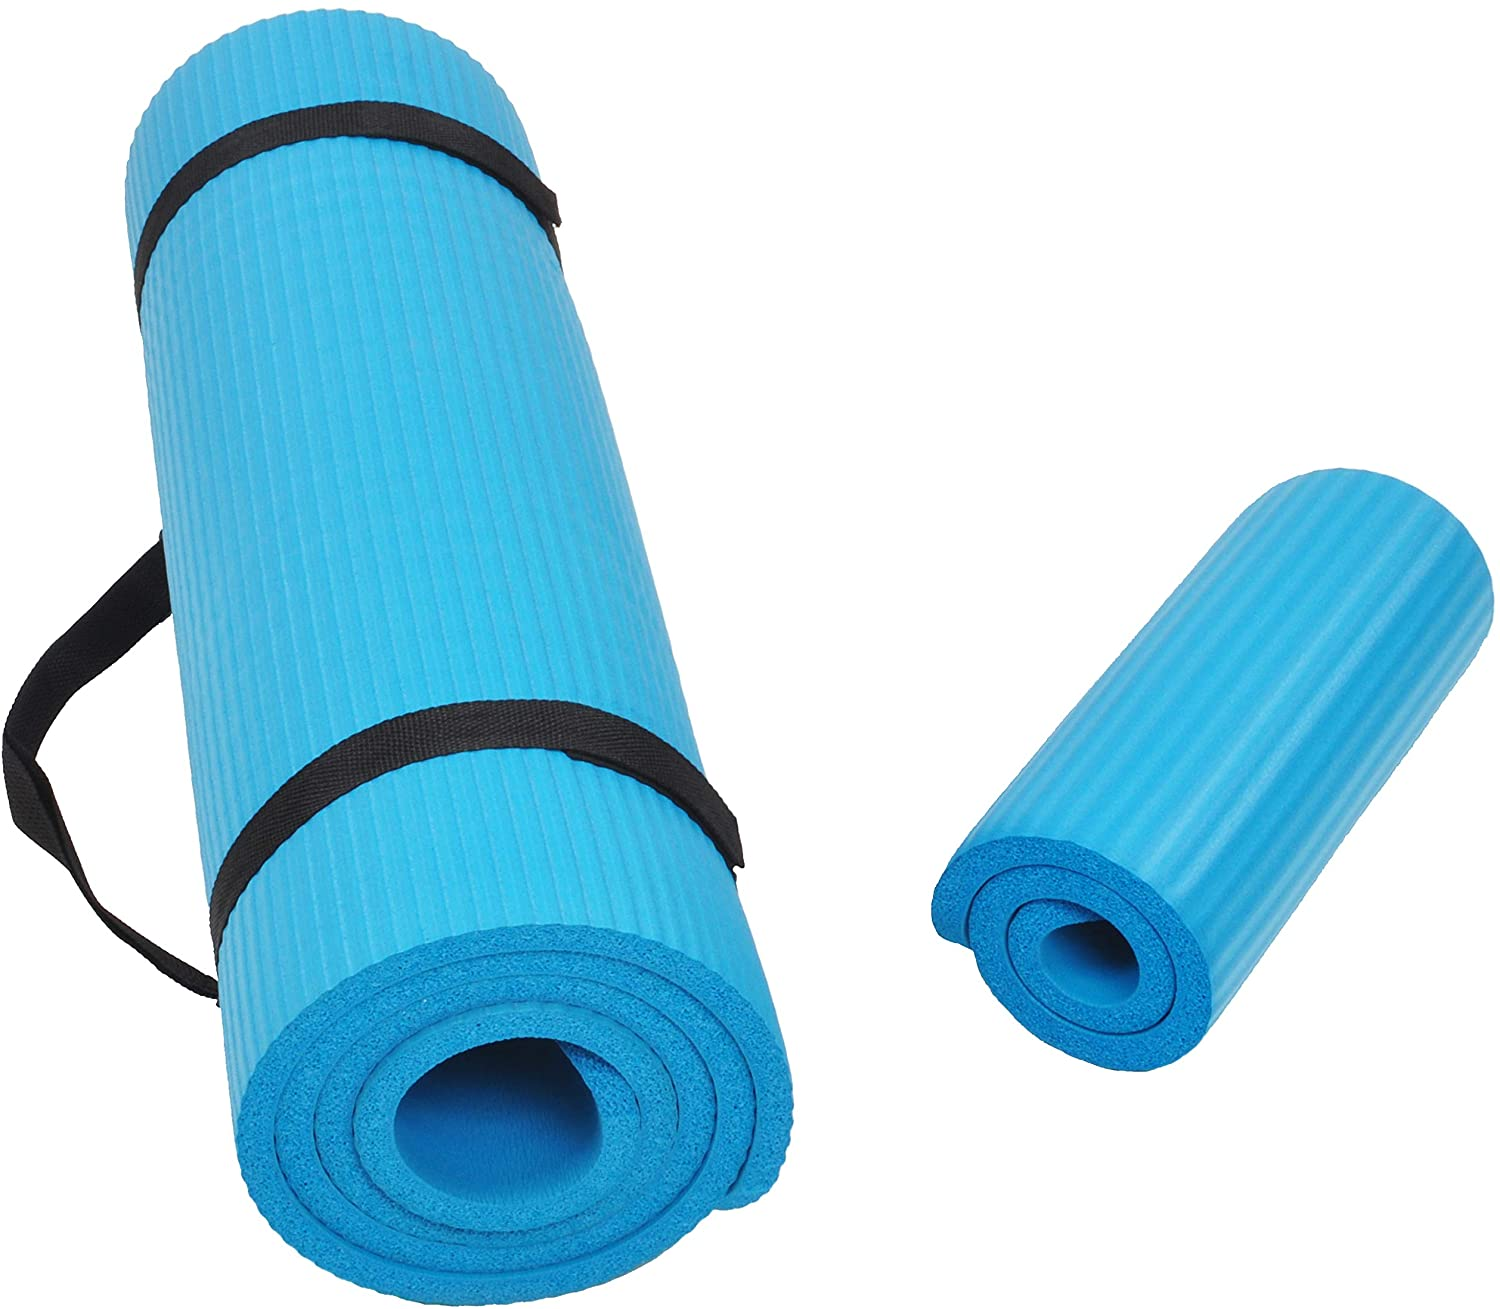 2. BalanceFrom GoYoga+ All-Purpose 1/2-Inch Extra Thick